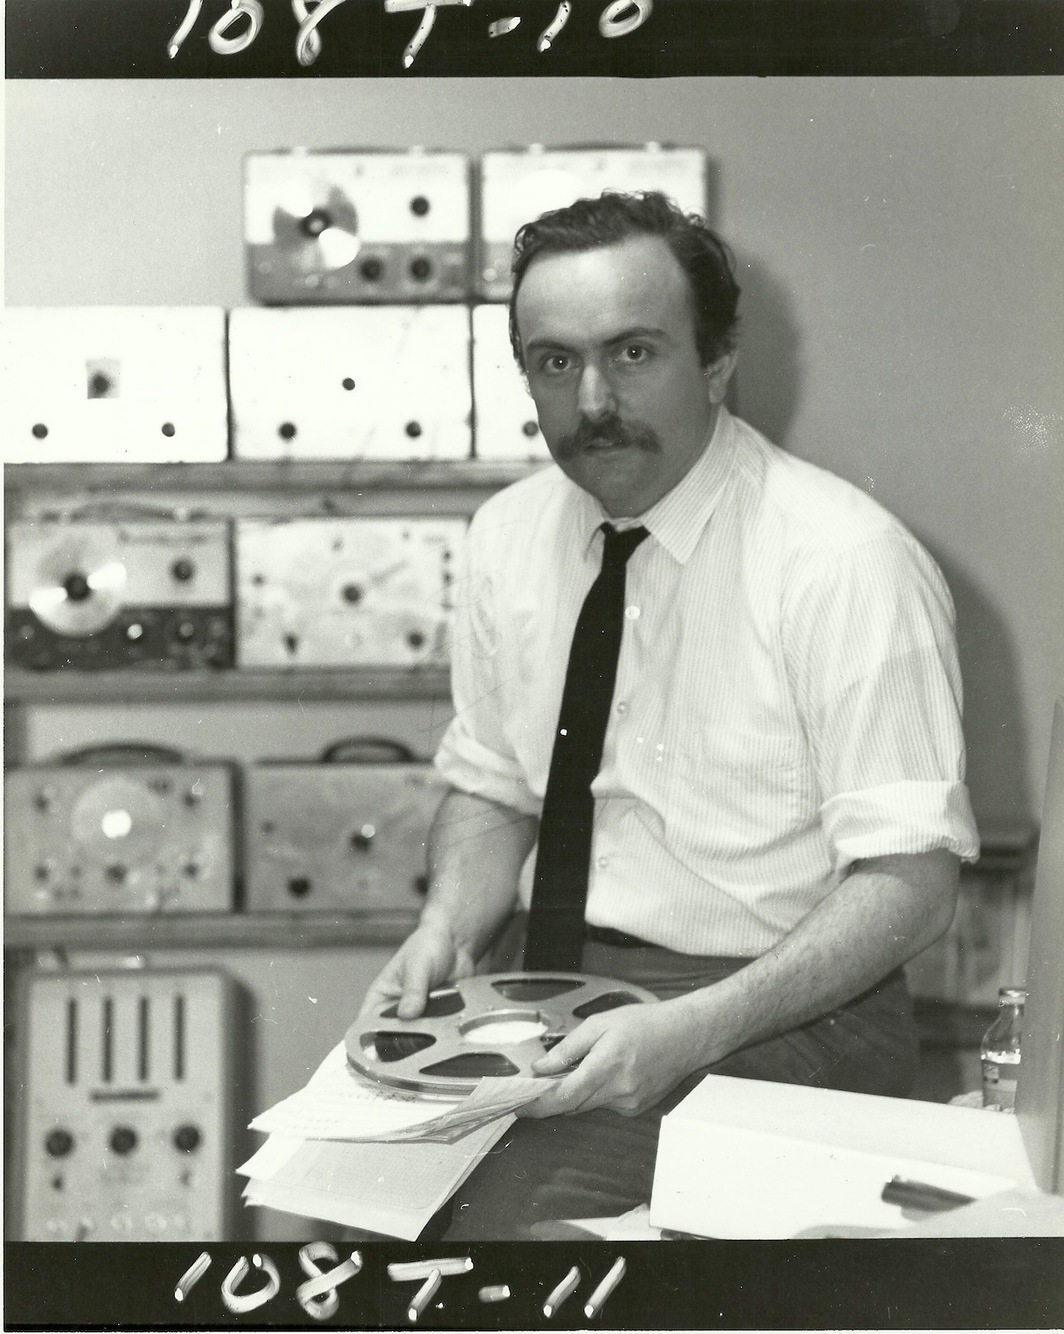 Alvin Lucier at Brandeis Electronic Music Studio, ca. late 1960s. Photographer unknown.